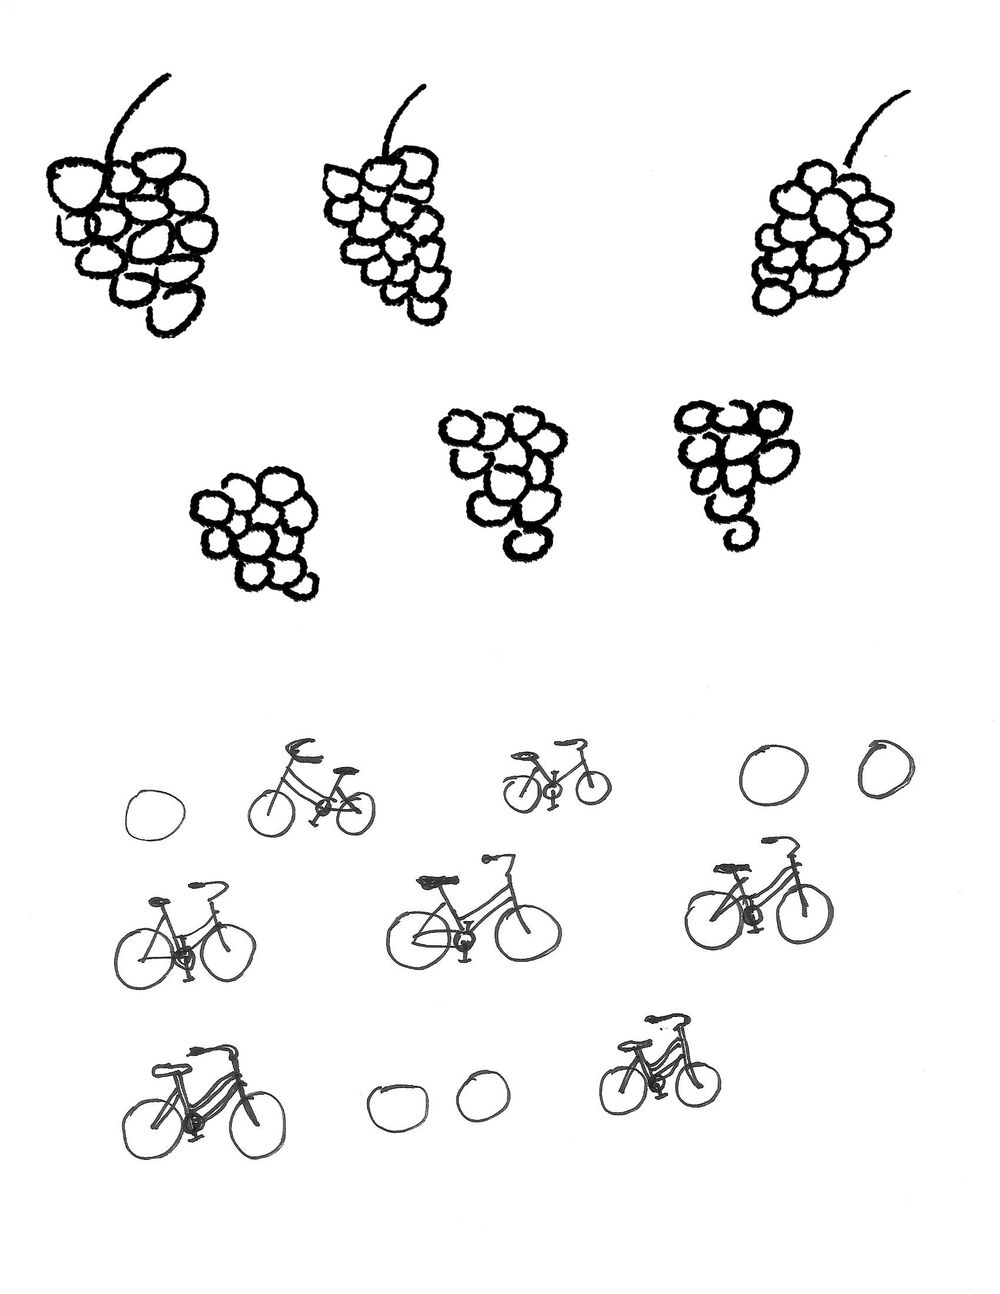 Wine Tasting by Bicycle in Sonoma - image 3 - student project